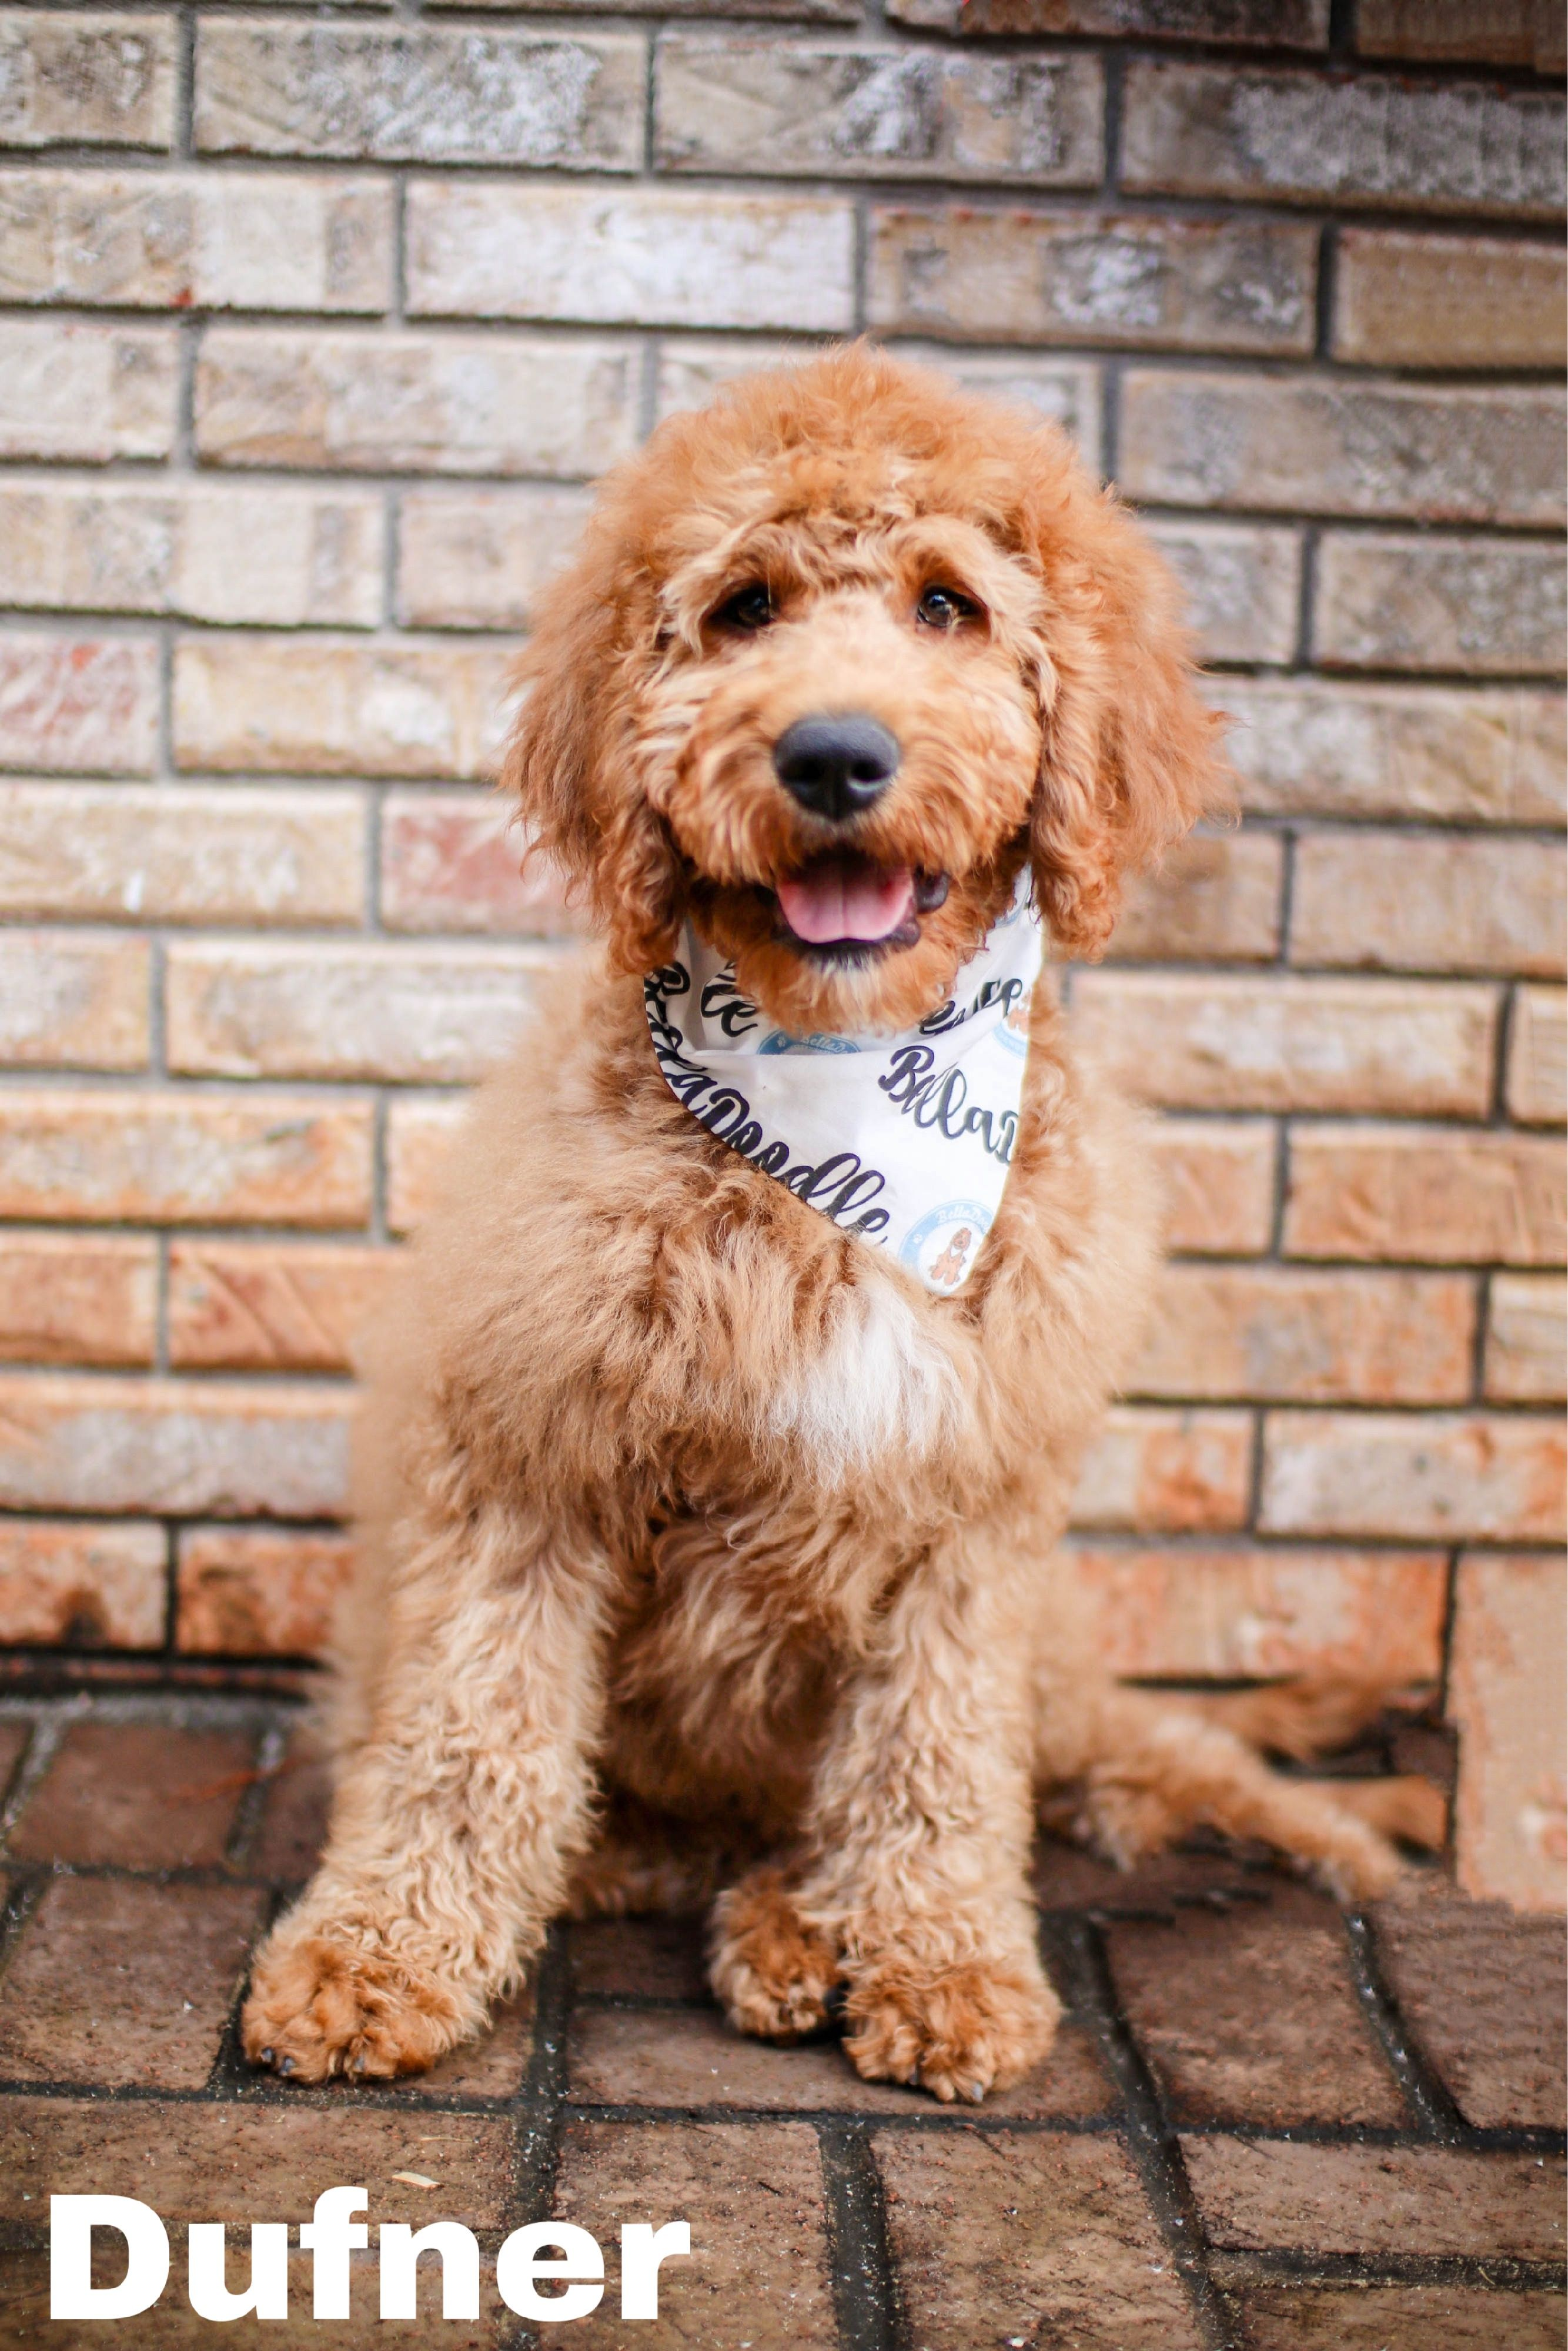 BellaDoodles Goldendoodles Goldendoodle, Mini